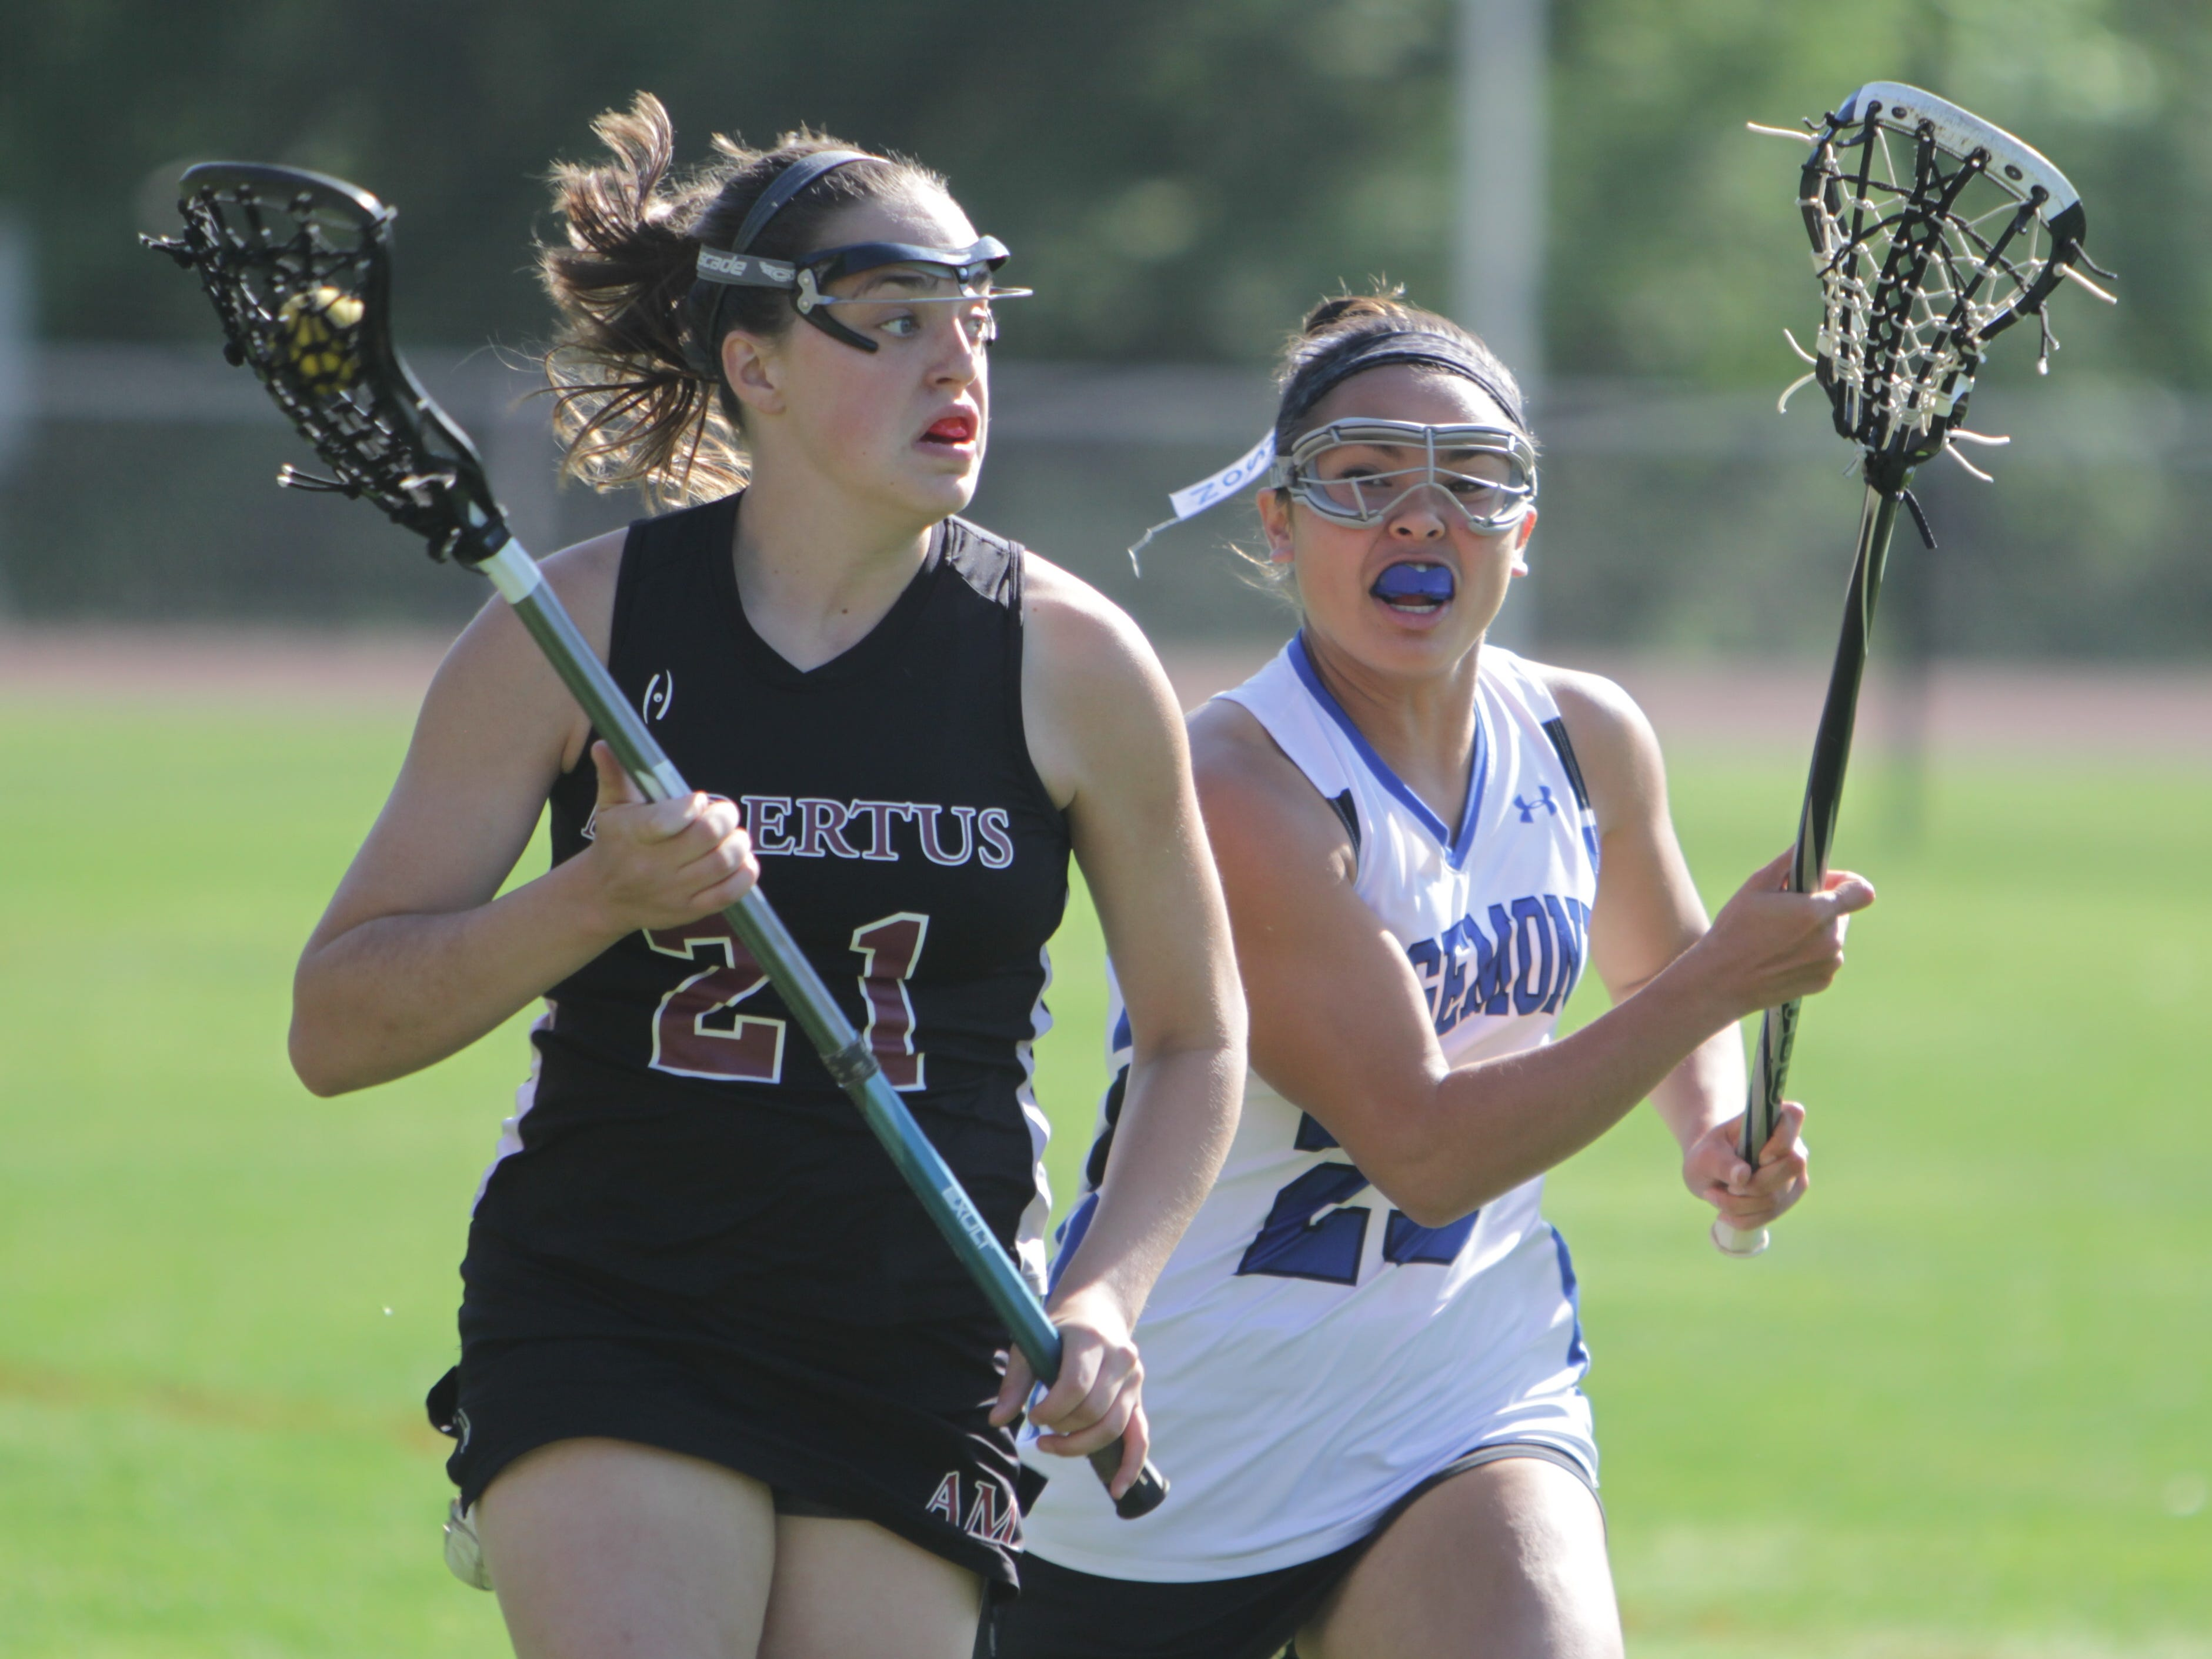 Albertus Magnus' Amanda Silvestri runs up the field and is guarded by Edgemont's Dani Myerson during a Class C sectional tournament first round game at Edgemont High School. Edgemont won 10-8.